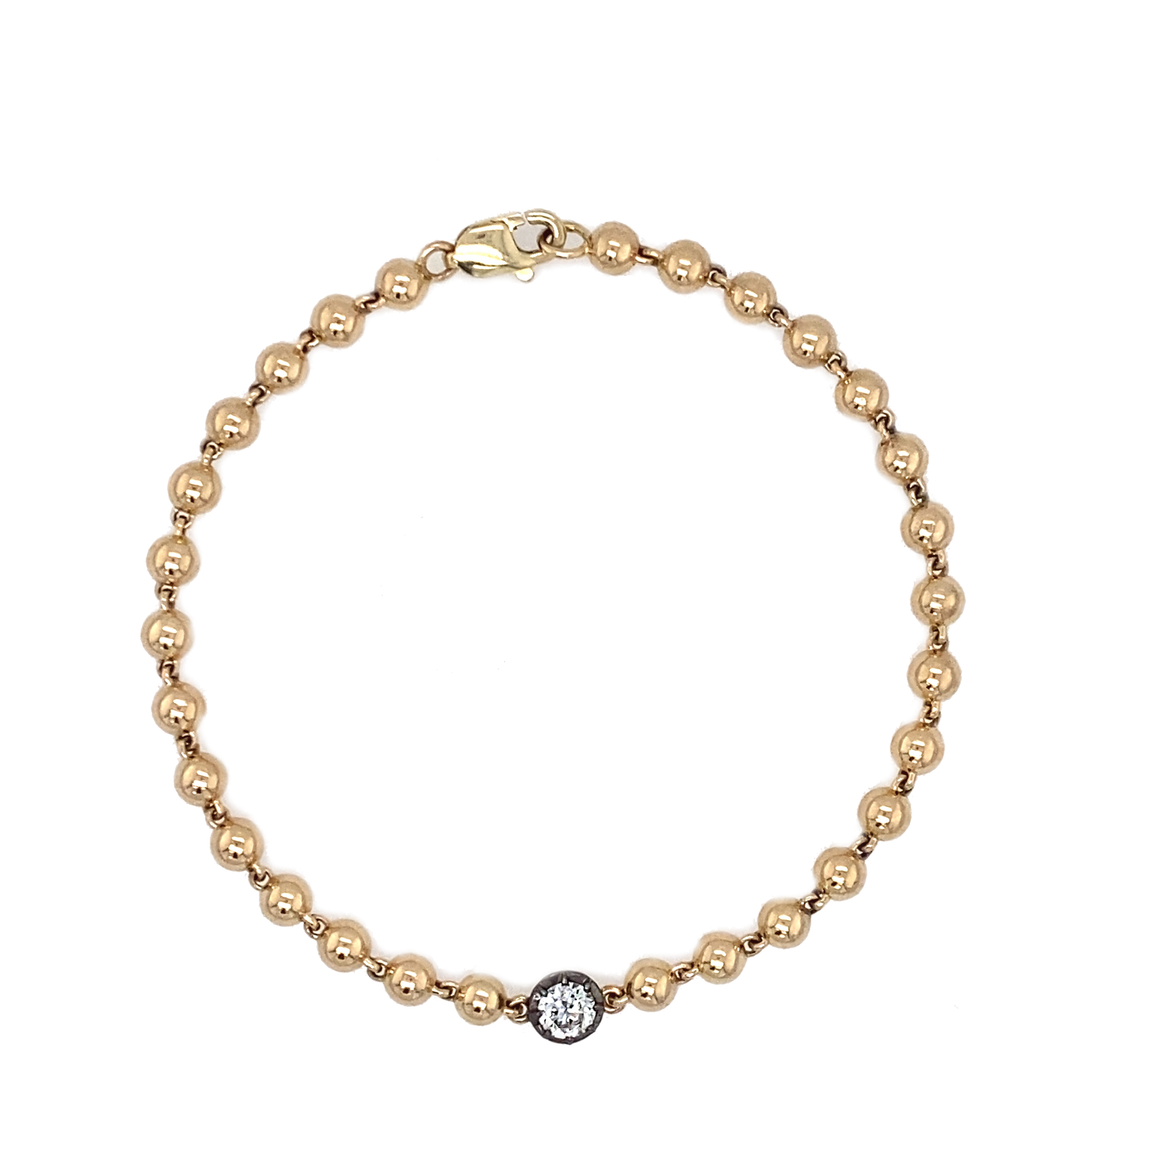 Yellow Gold Collet Bead Bracelet - Lesley Ann Jewels